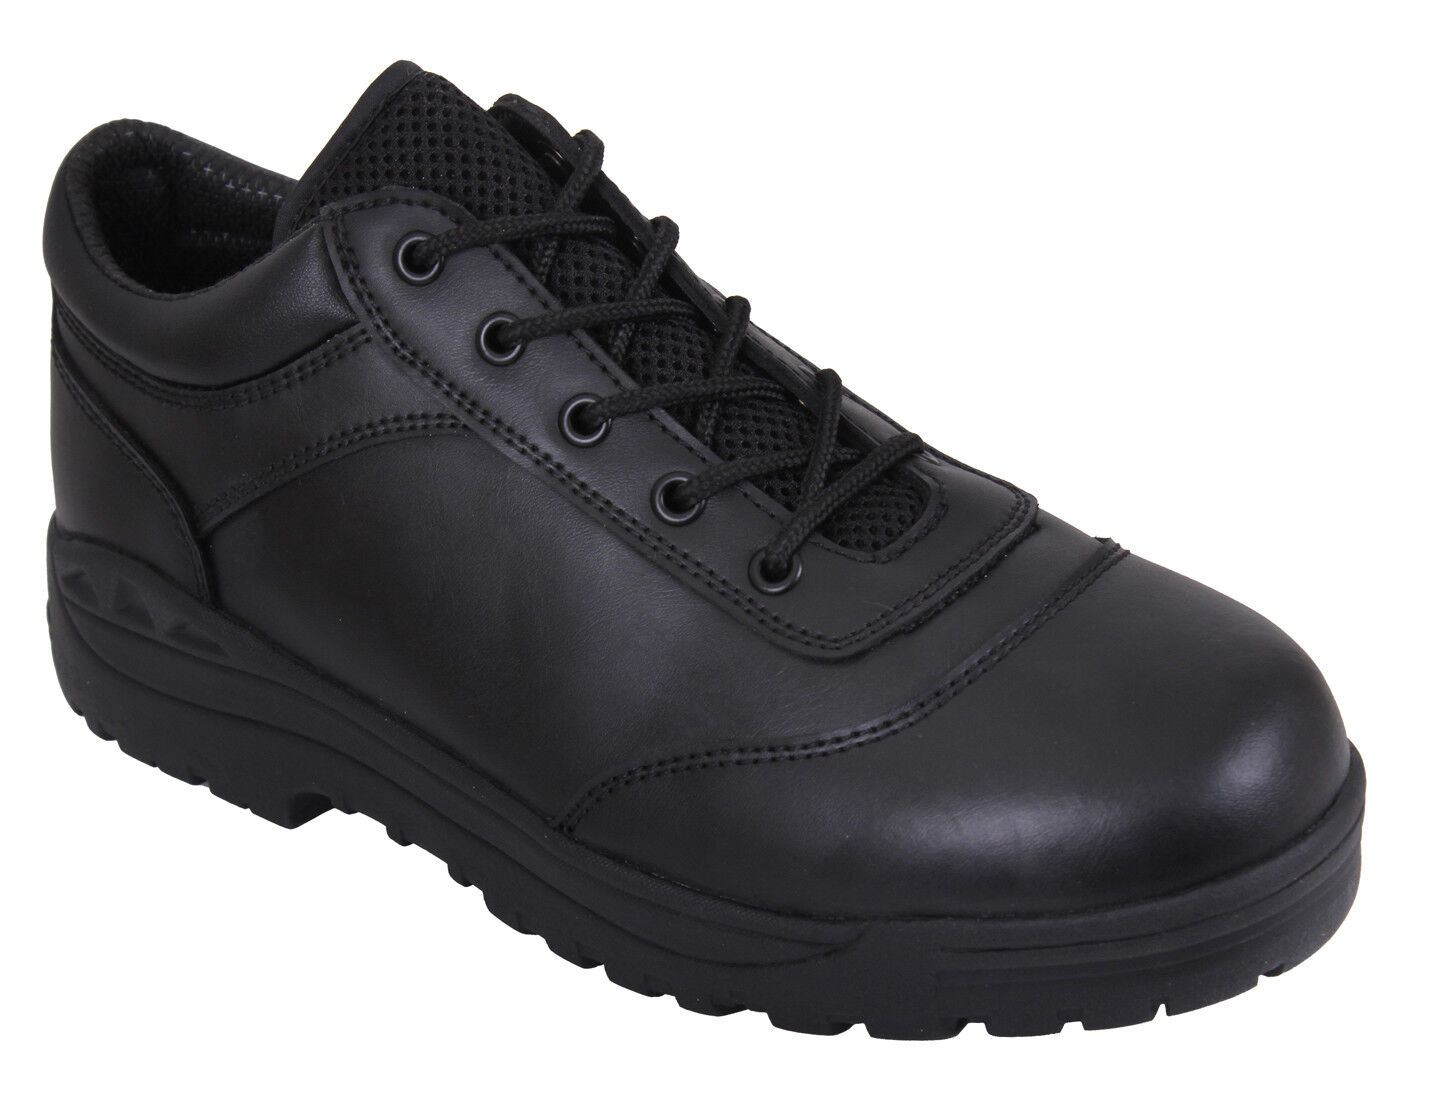 Tactical Utility Oxford shoes Leather shoes Black redhco 5116